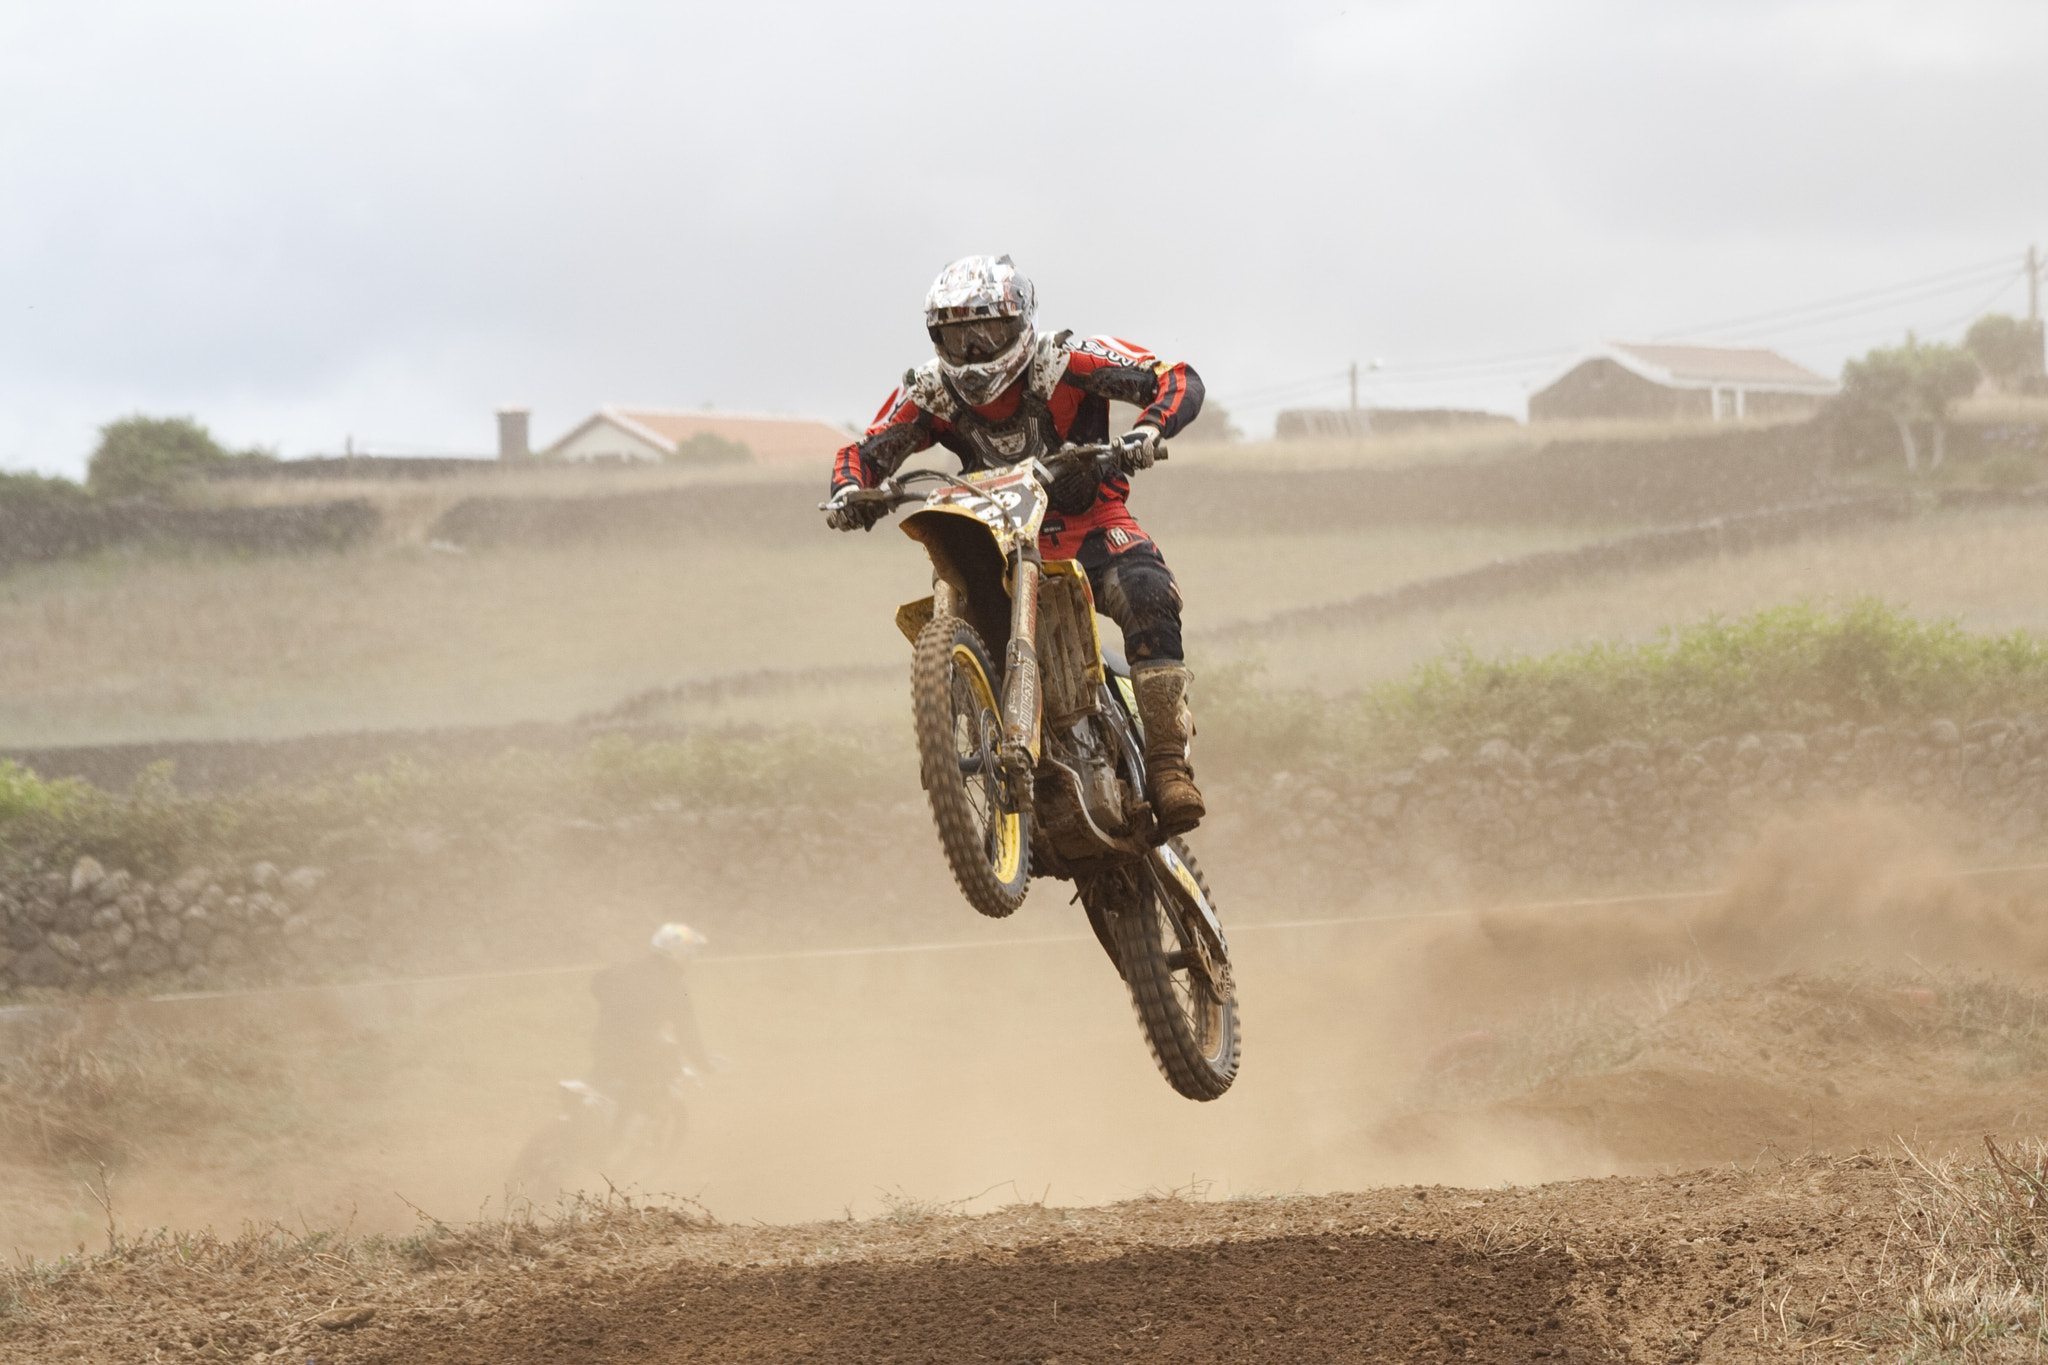 Photograph Motocross by Luís Melo on 500px